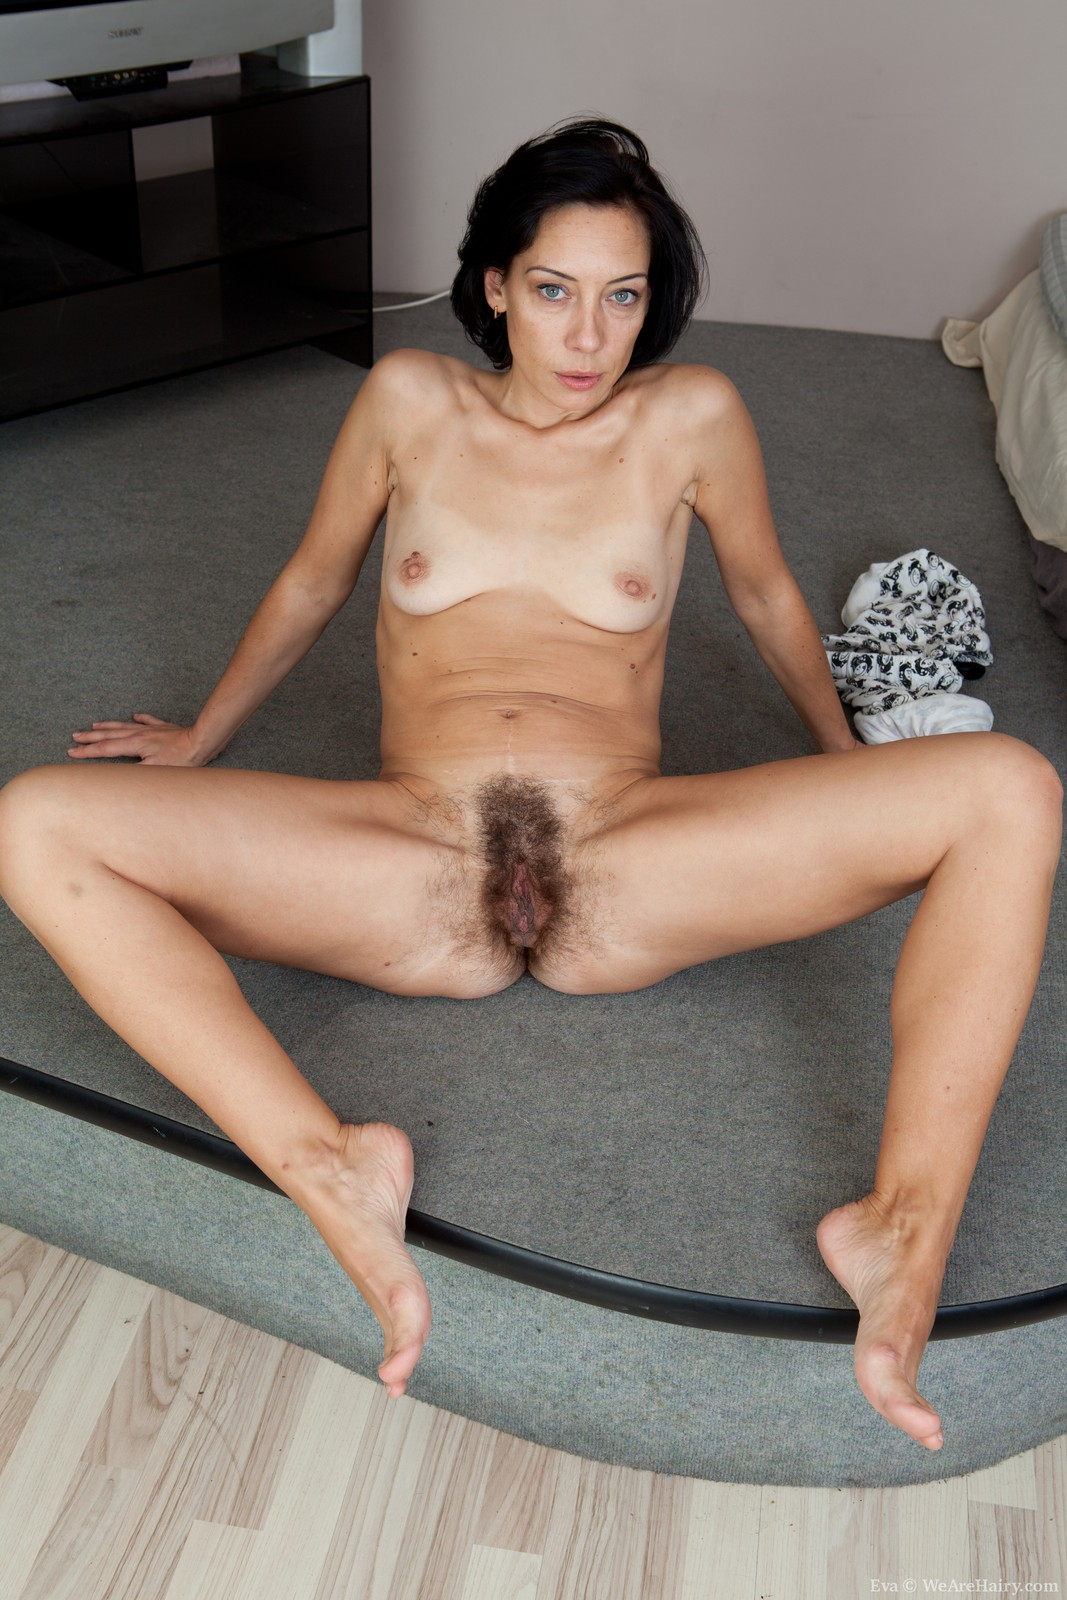 Final, sorry, Atk hairy mature milf something similar